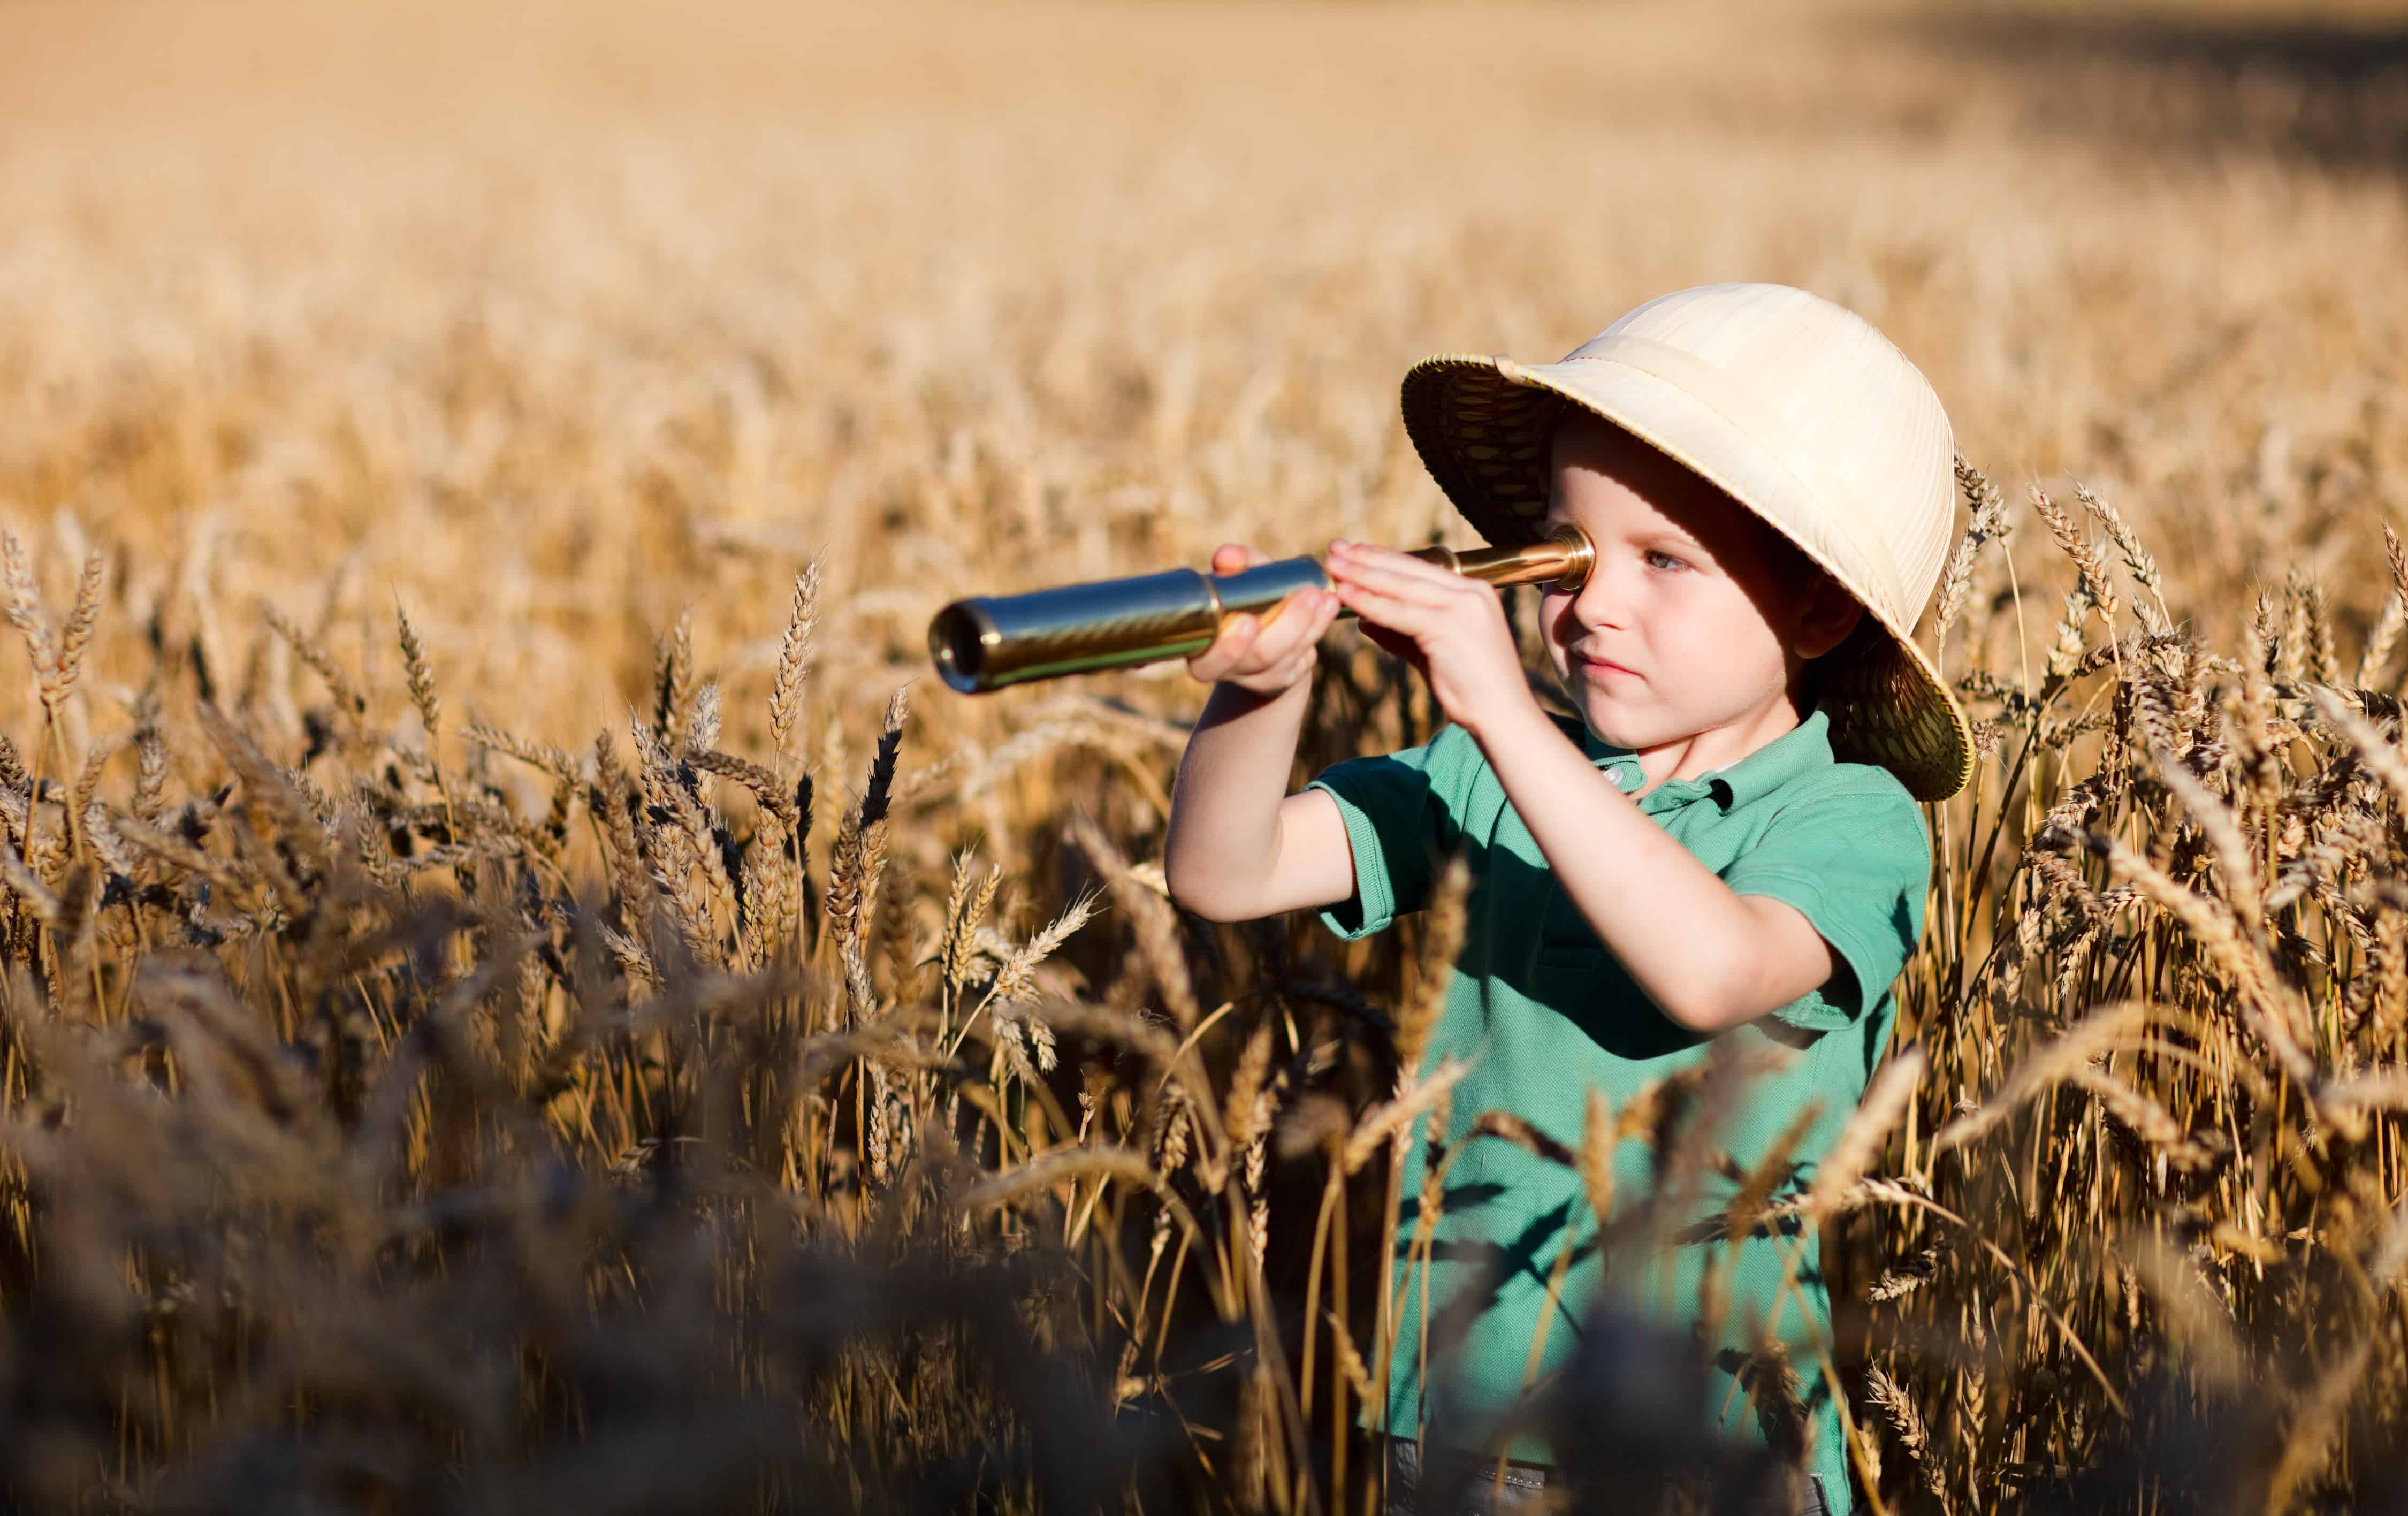 Hunting and exploring nature with a monocular